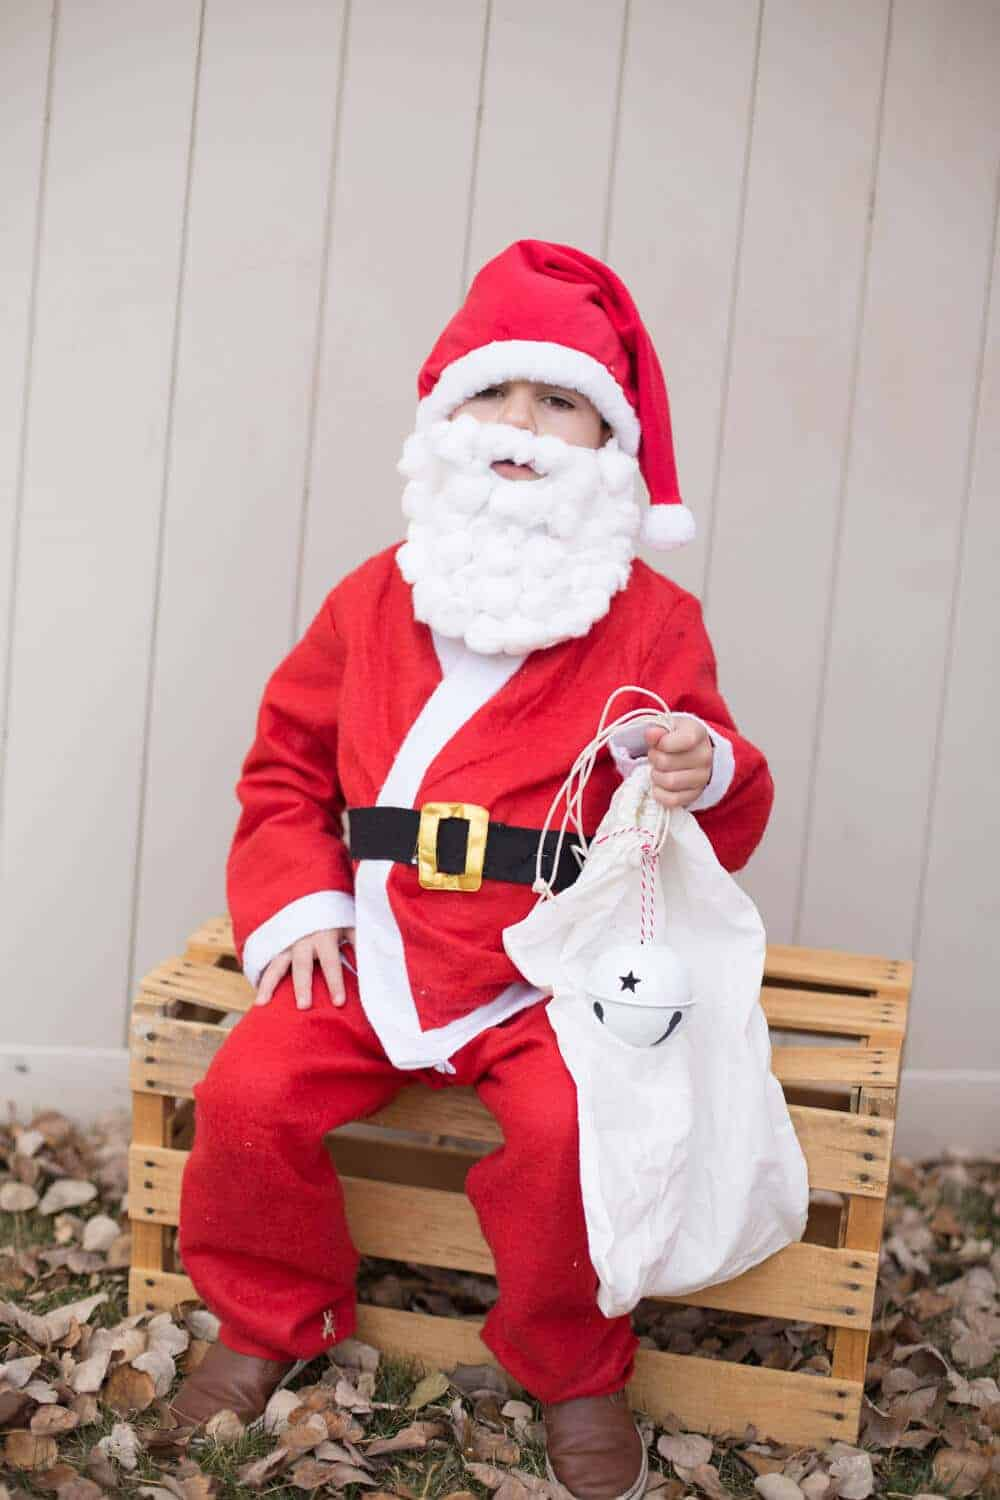 anta Clause costume- family halloween costume ideas